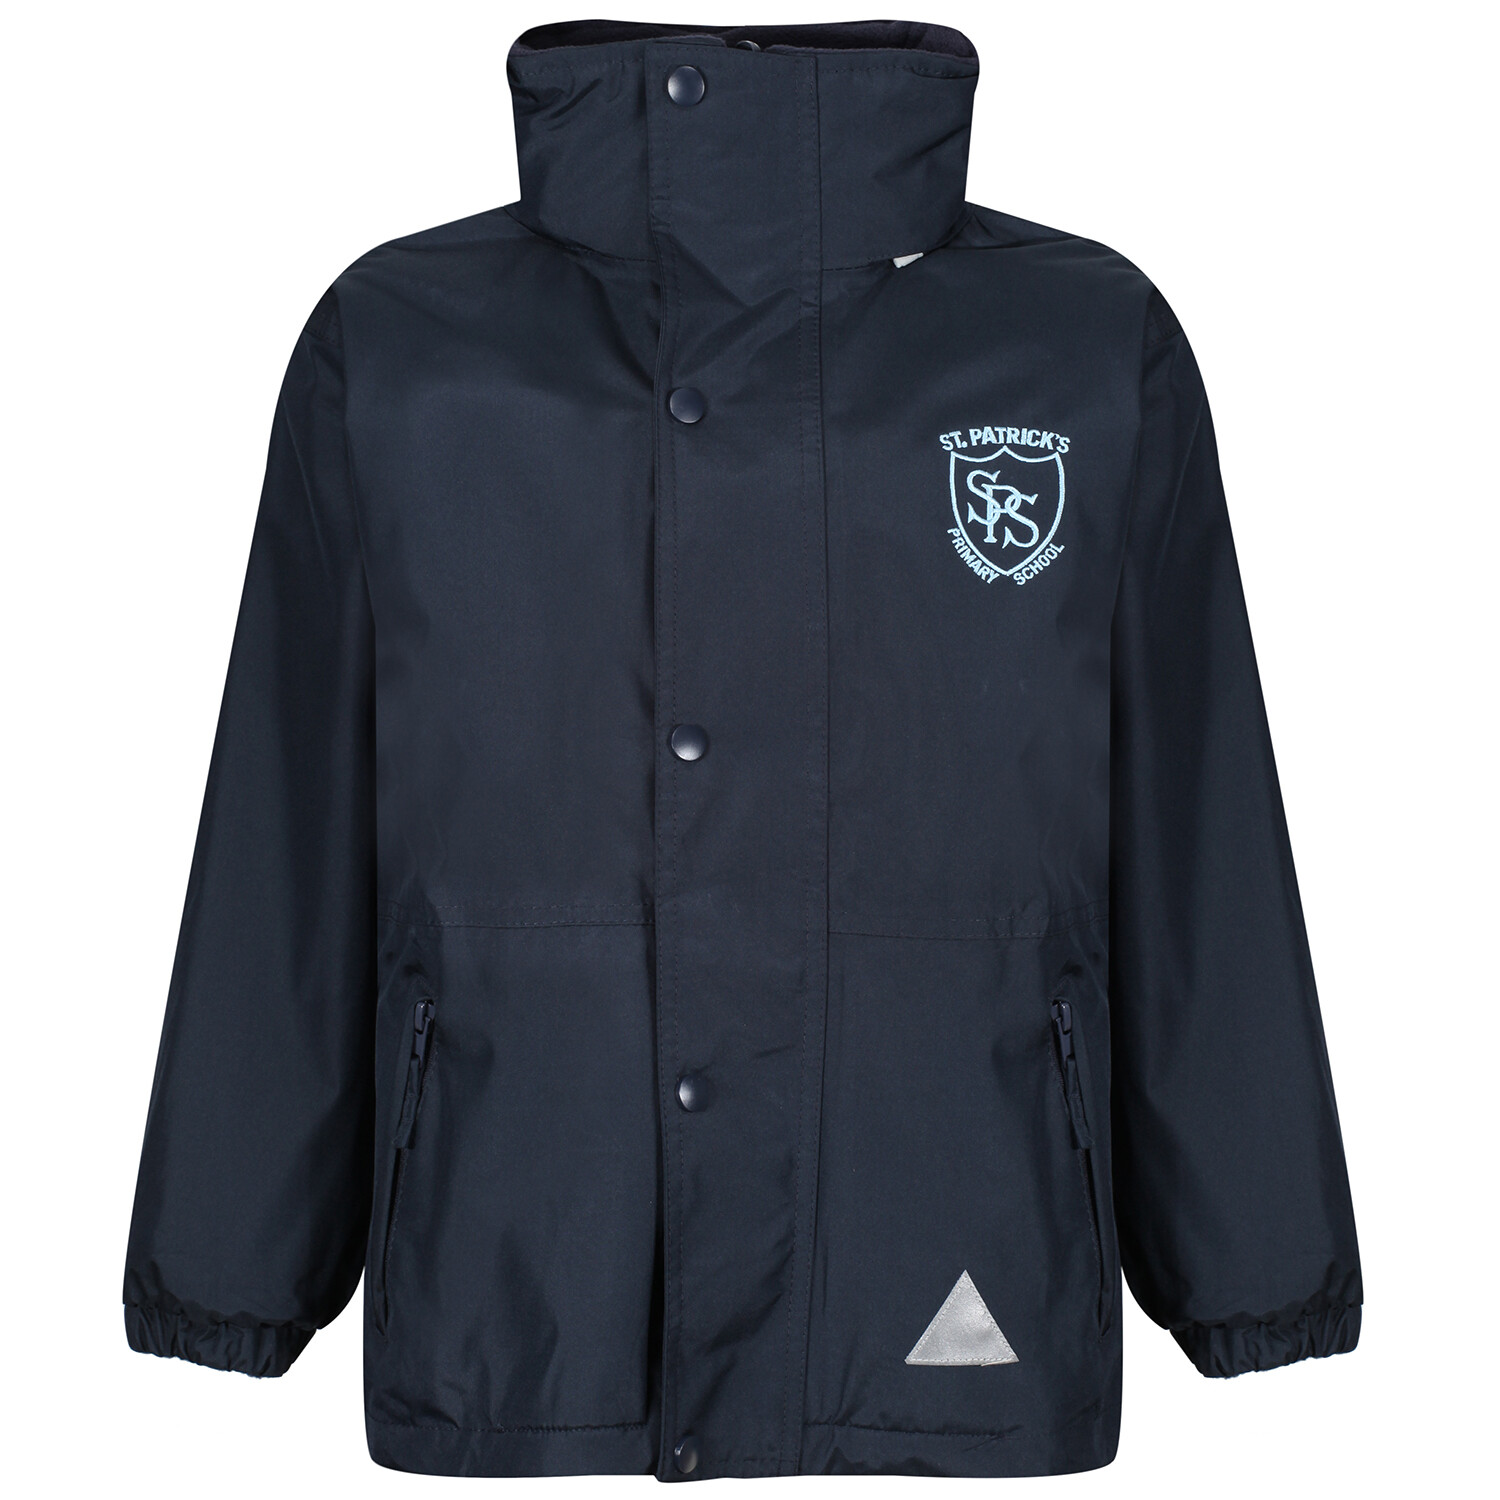 St Patrick's Primary Heavy Rain Jacket (Fleece lined)